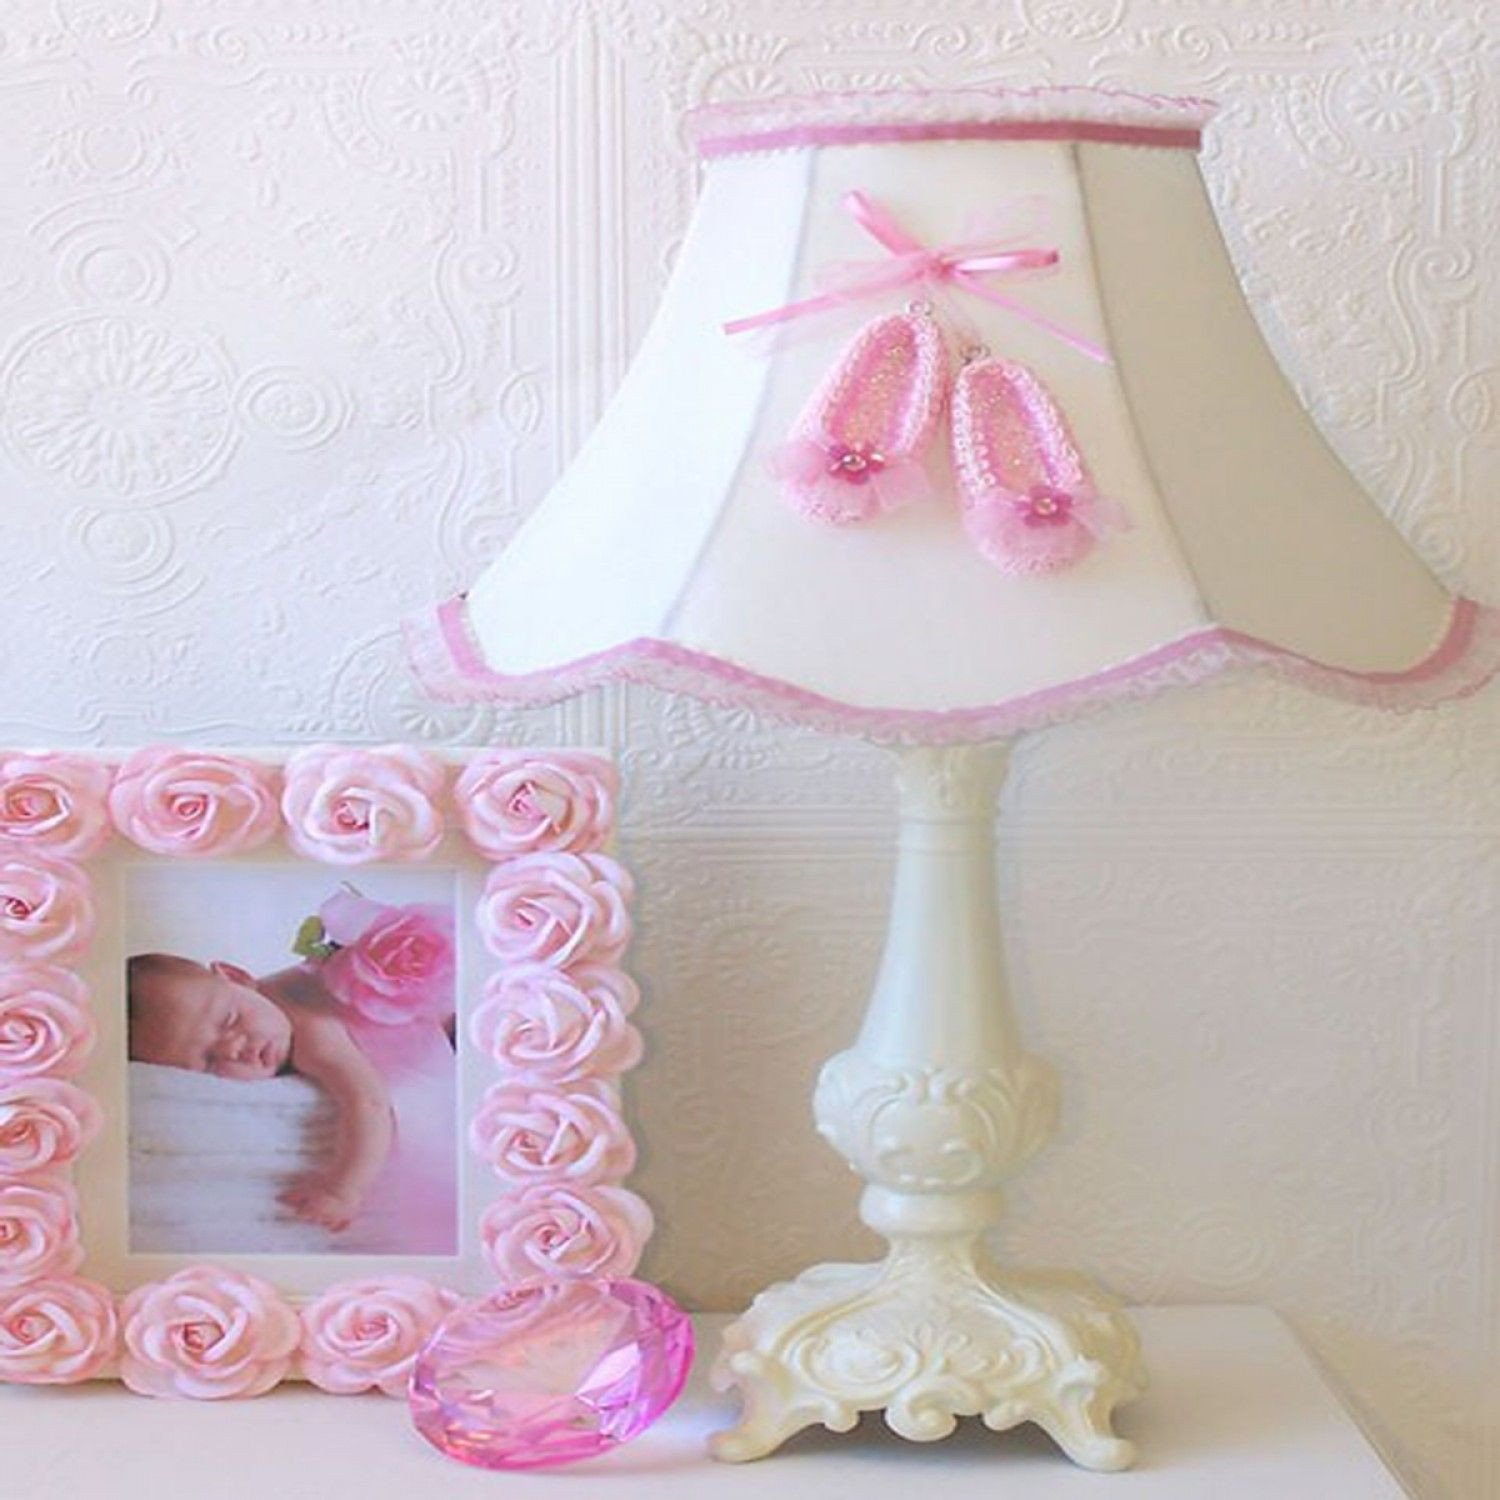 Light Fixtures for Girl Bedroom Beautiful Exquisite Rose Pink Ballerina Slippers Table Lamp and Rose